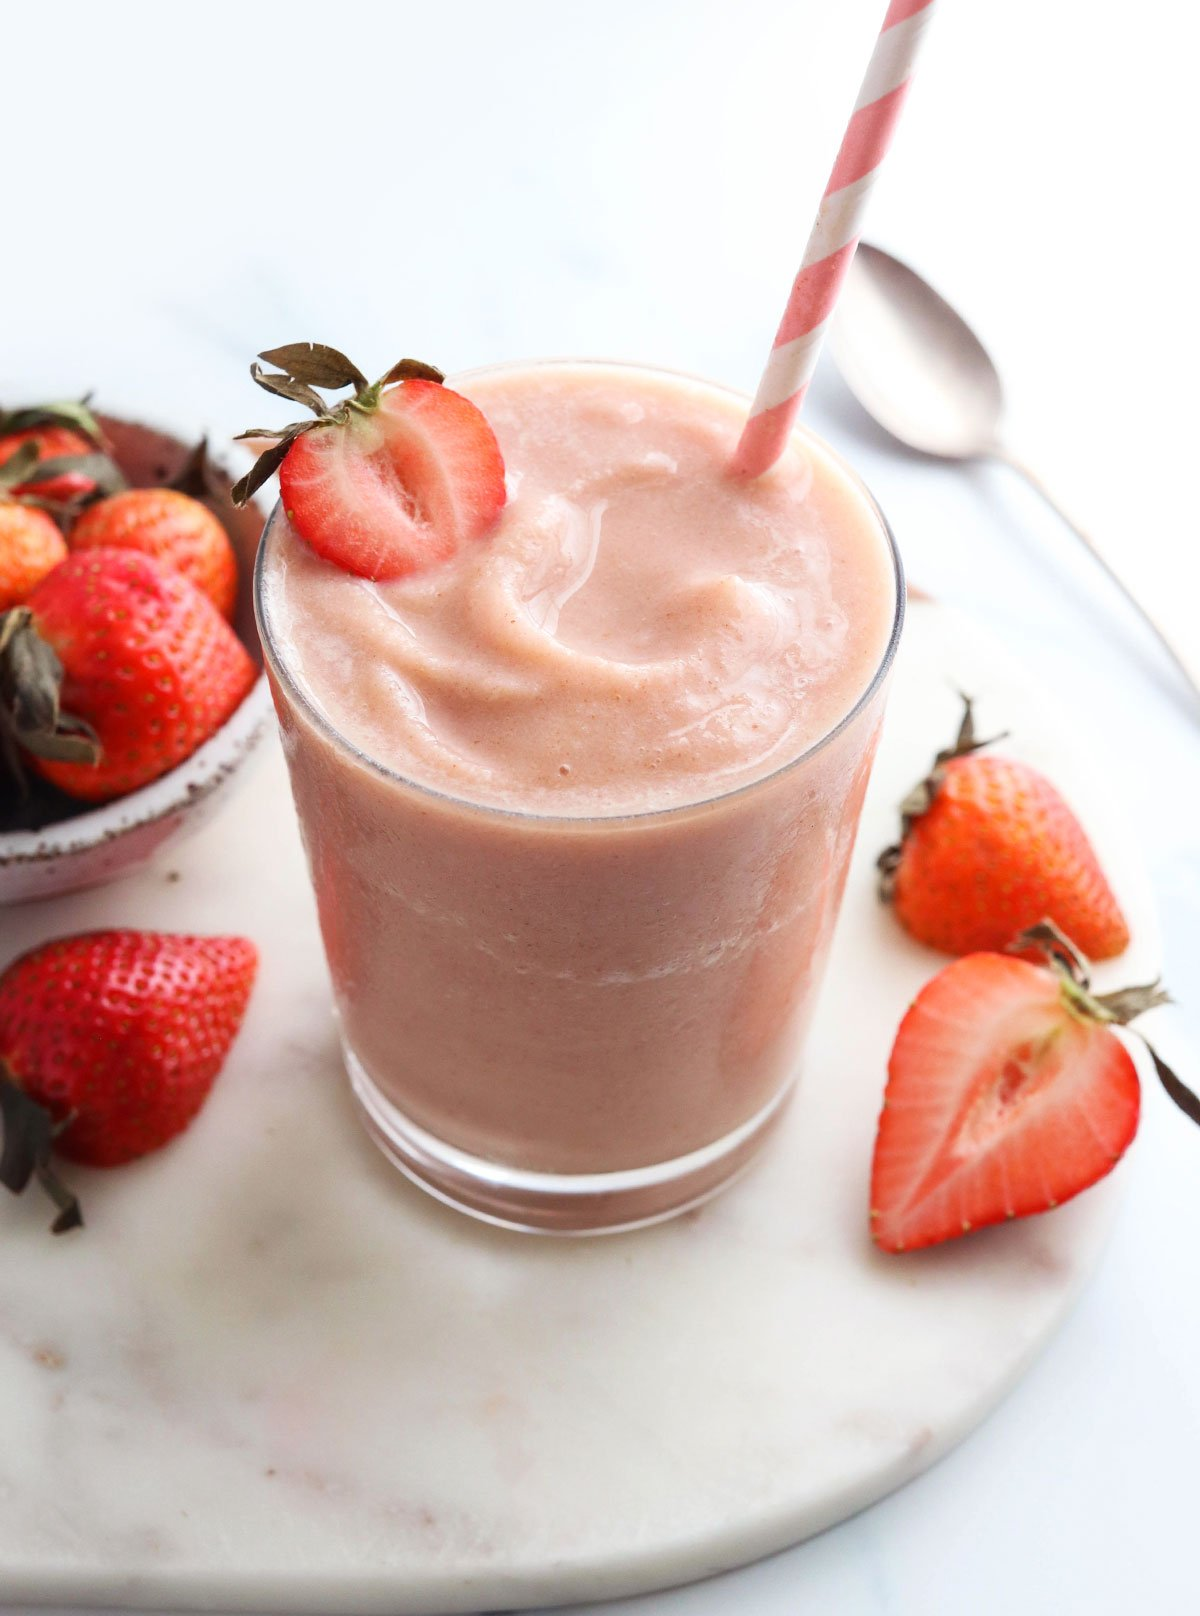 strawberry smoothie with strawberry on top